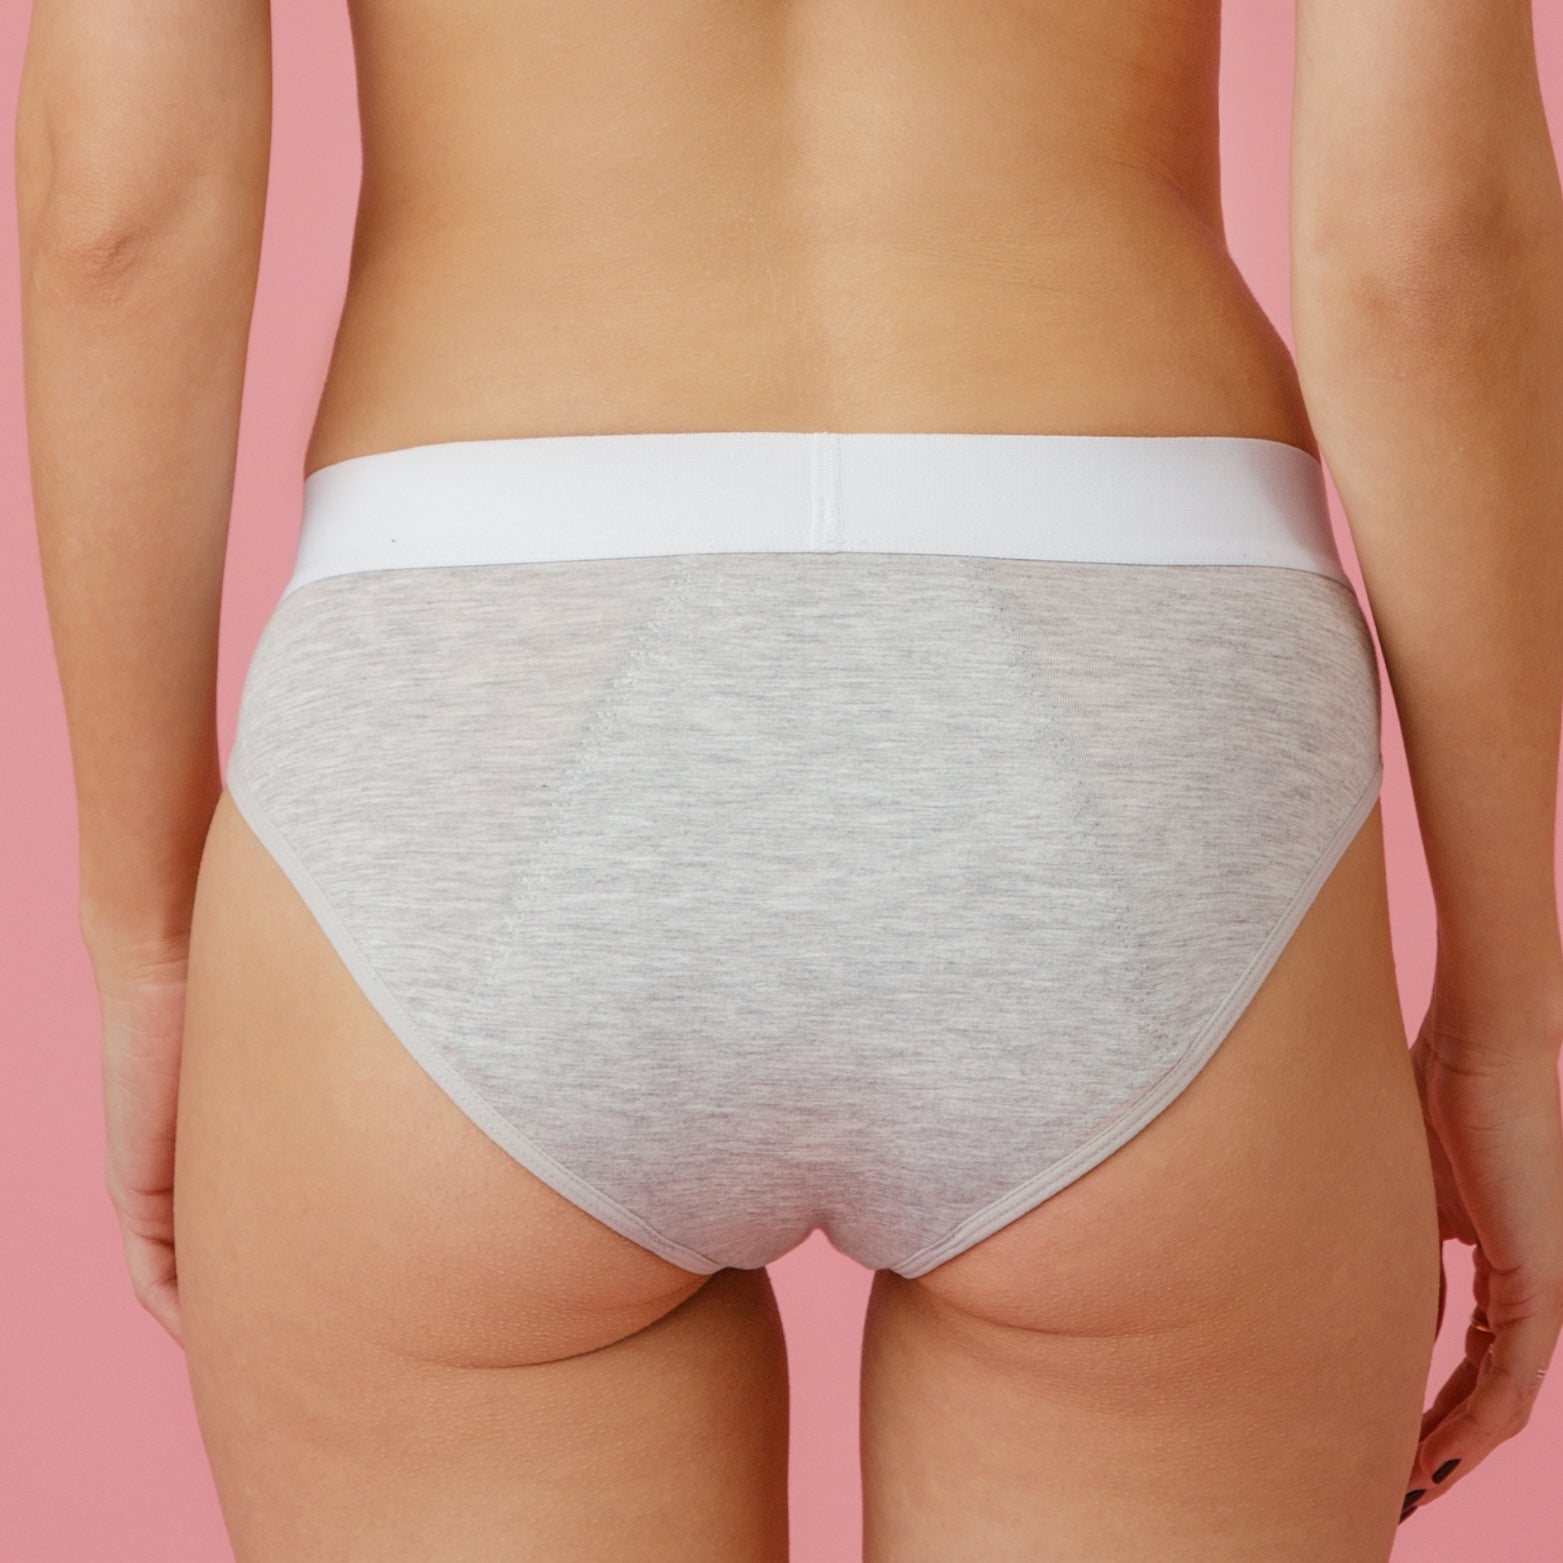 period panties back gentleday.com